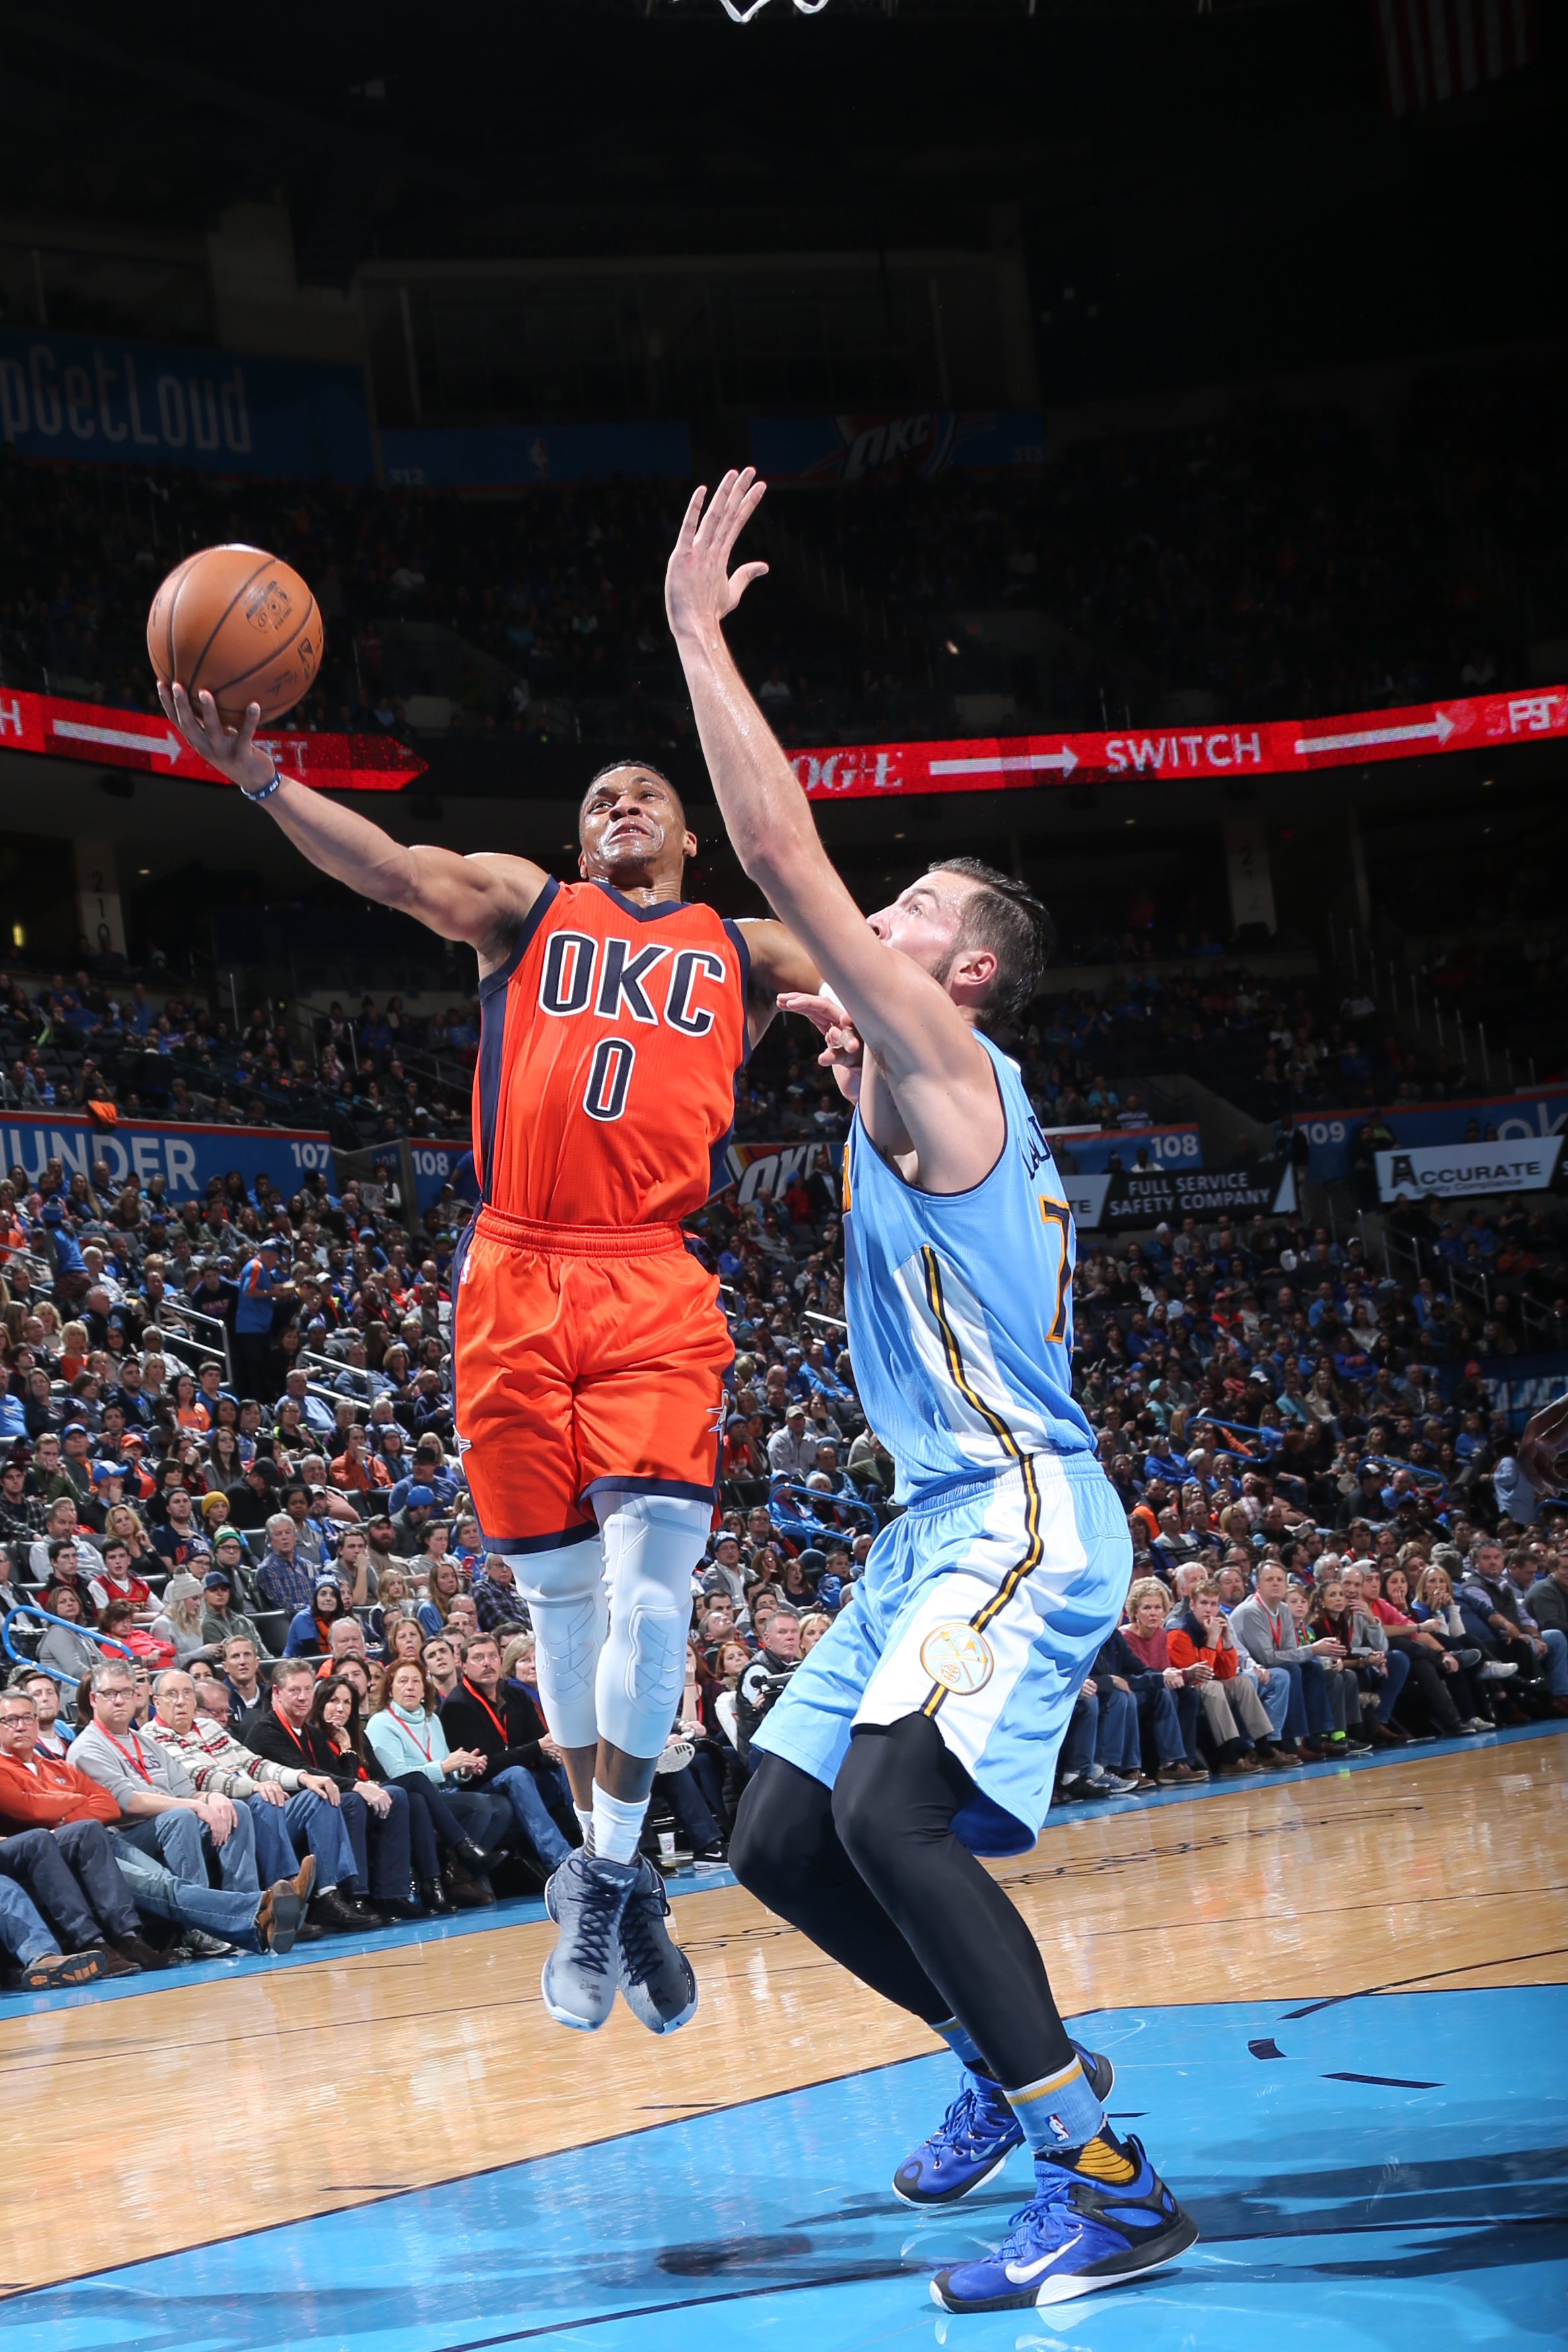 OKLAHOMA CITY, OK - DECEMBER 27:  Russell Westbrook #0 of the Oklahoma City Thunder goes to the basket against the Denver Nuggets on December 27, 2015 at Chesapeake Energy Arena in Oklahoma City, Oklahoma. (Photo by Layne Murdoch/NBAE via Getty Images)